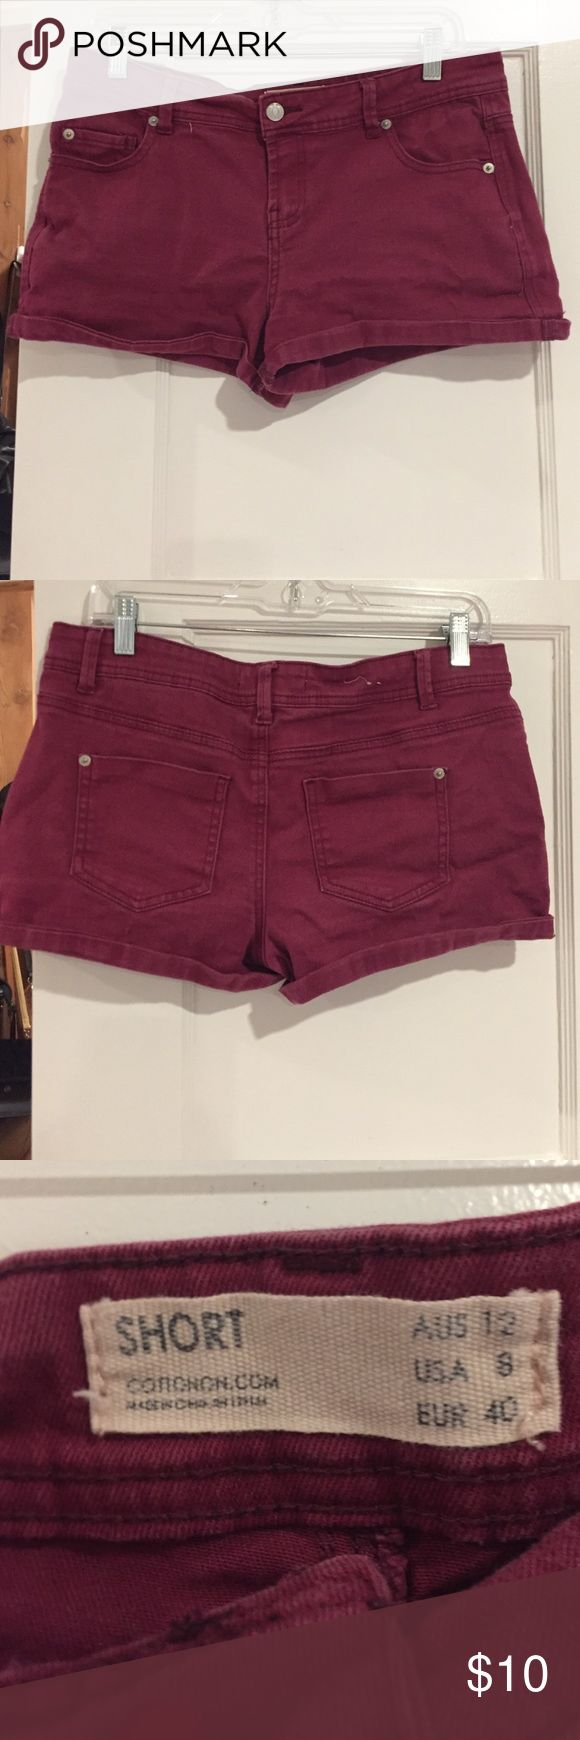 Burgundy shorts Burgundy shorts. Jean material. Worn a few times but still in great condition! Shorts